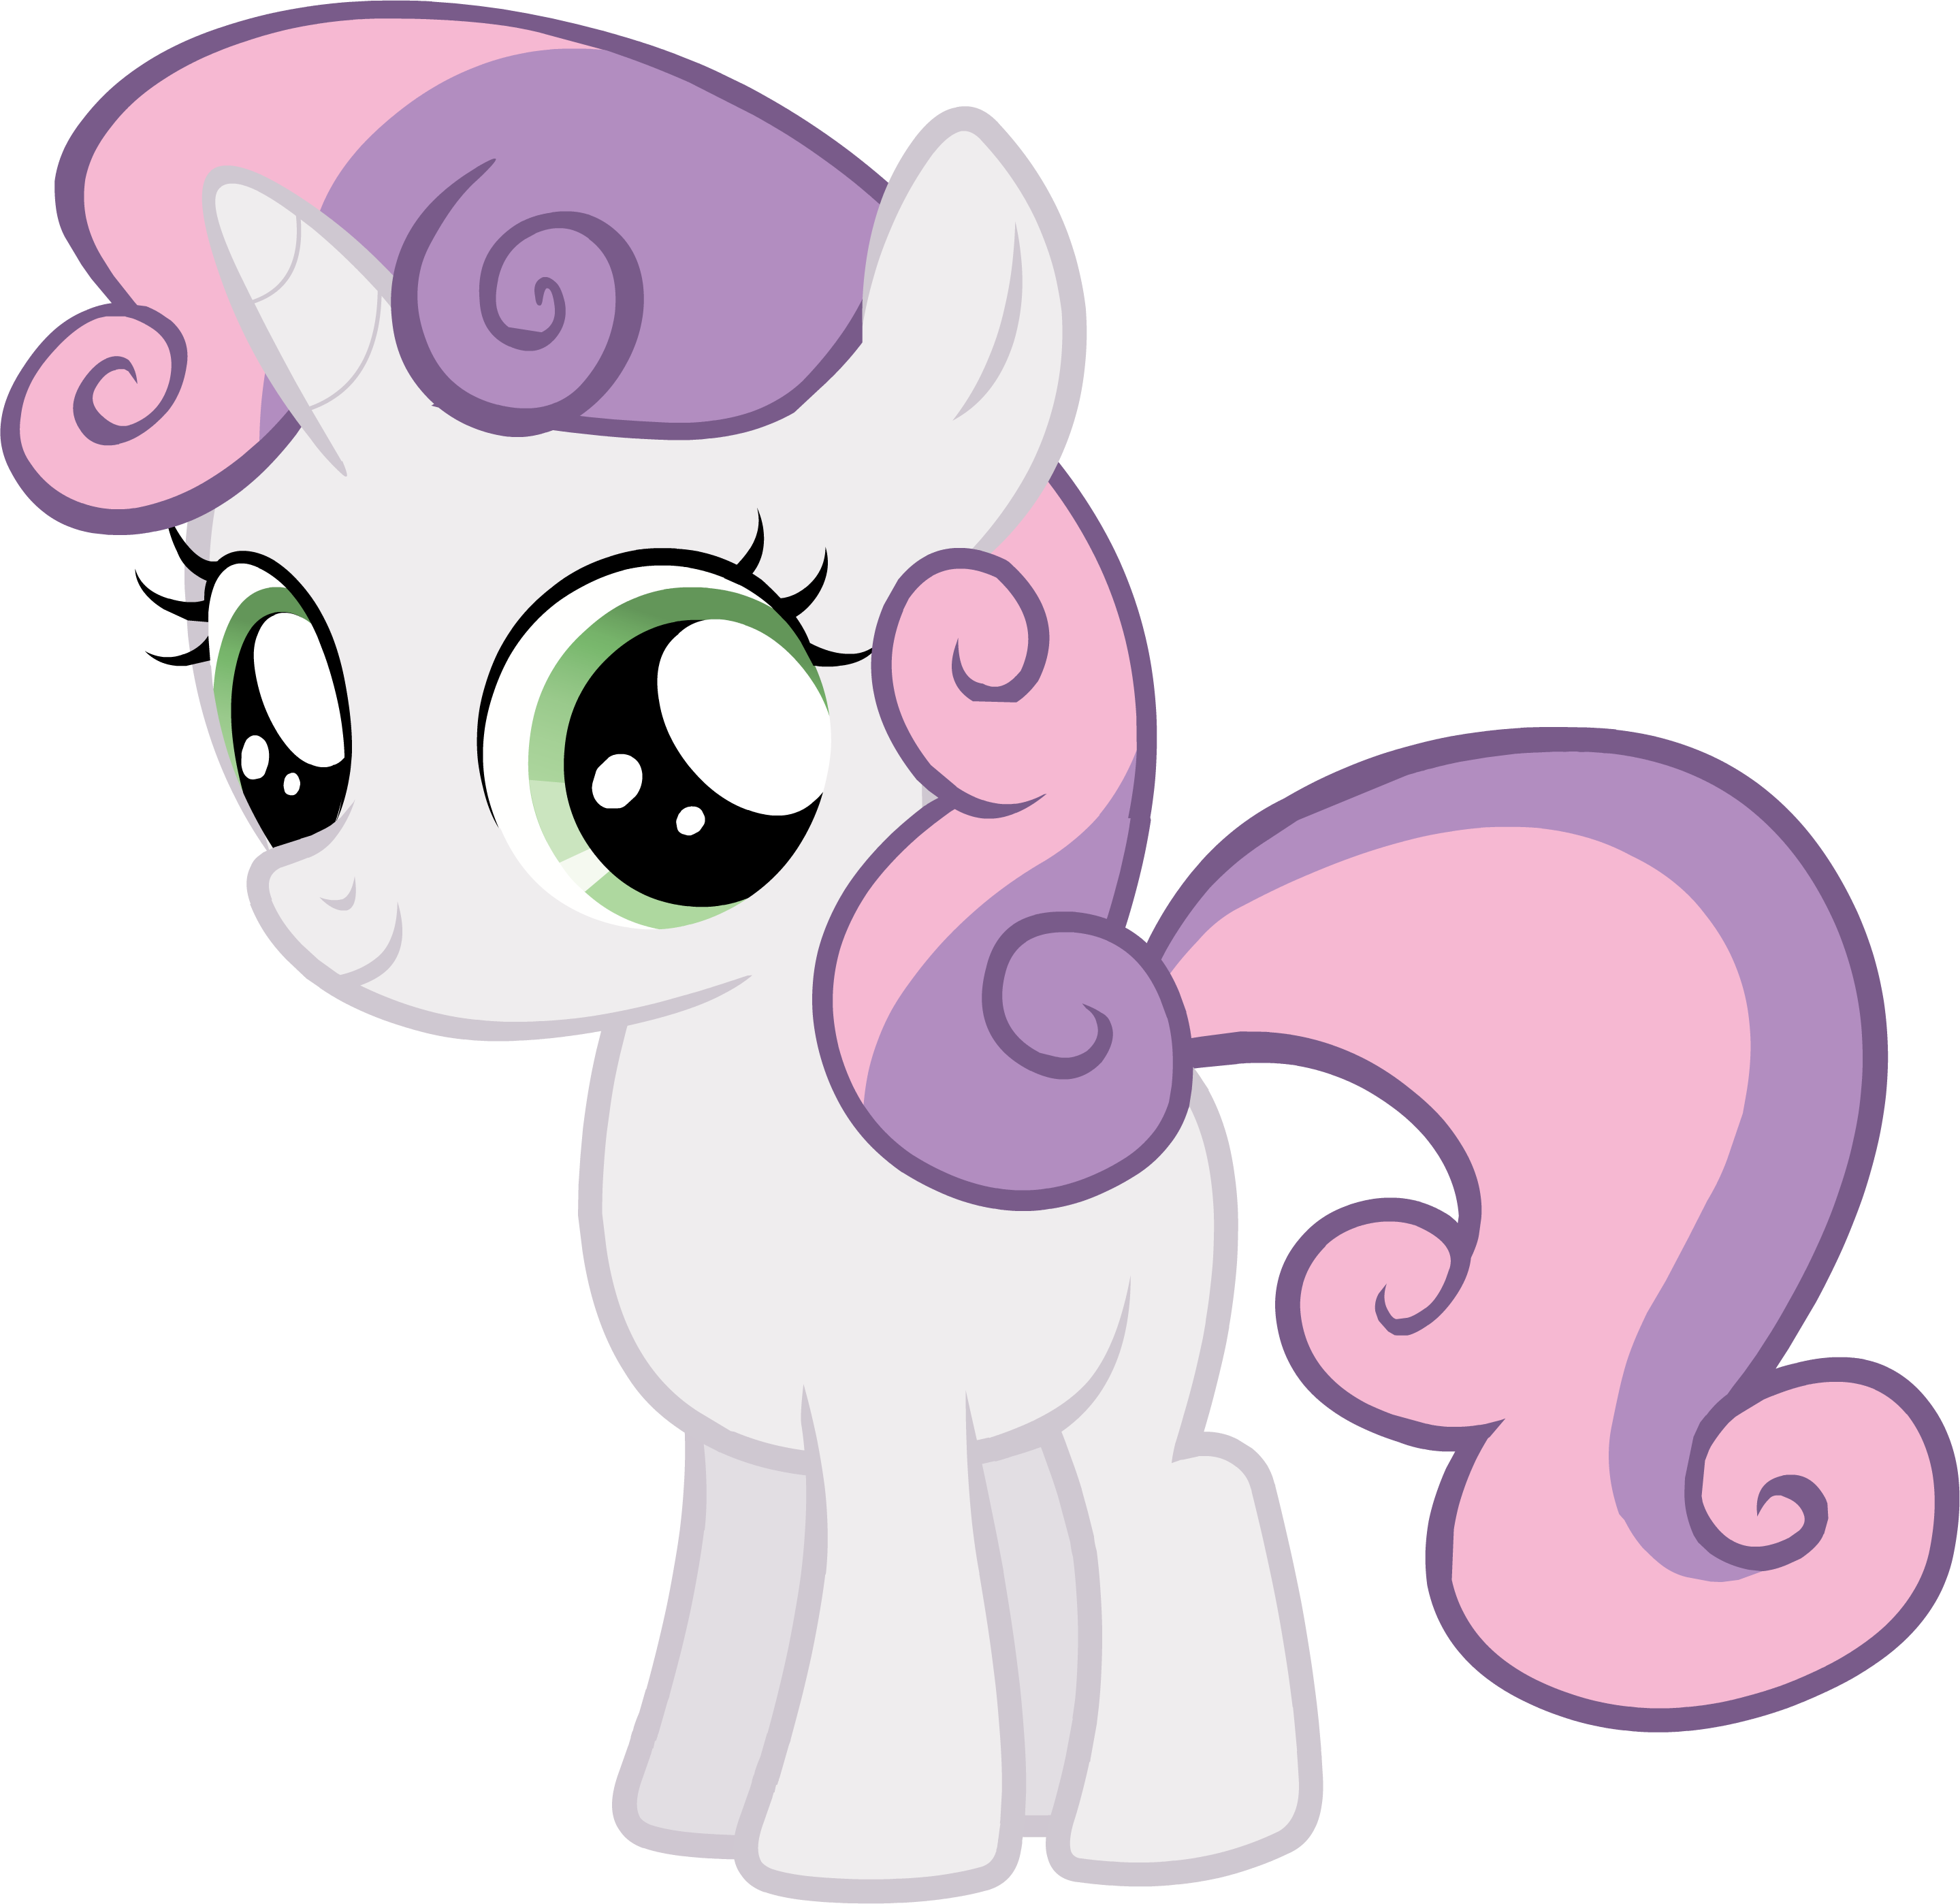 My Little Pony Equestria Girls Blog Personajes Normal mode strict mode list all children. my little pony equestria girls blog blogger